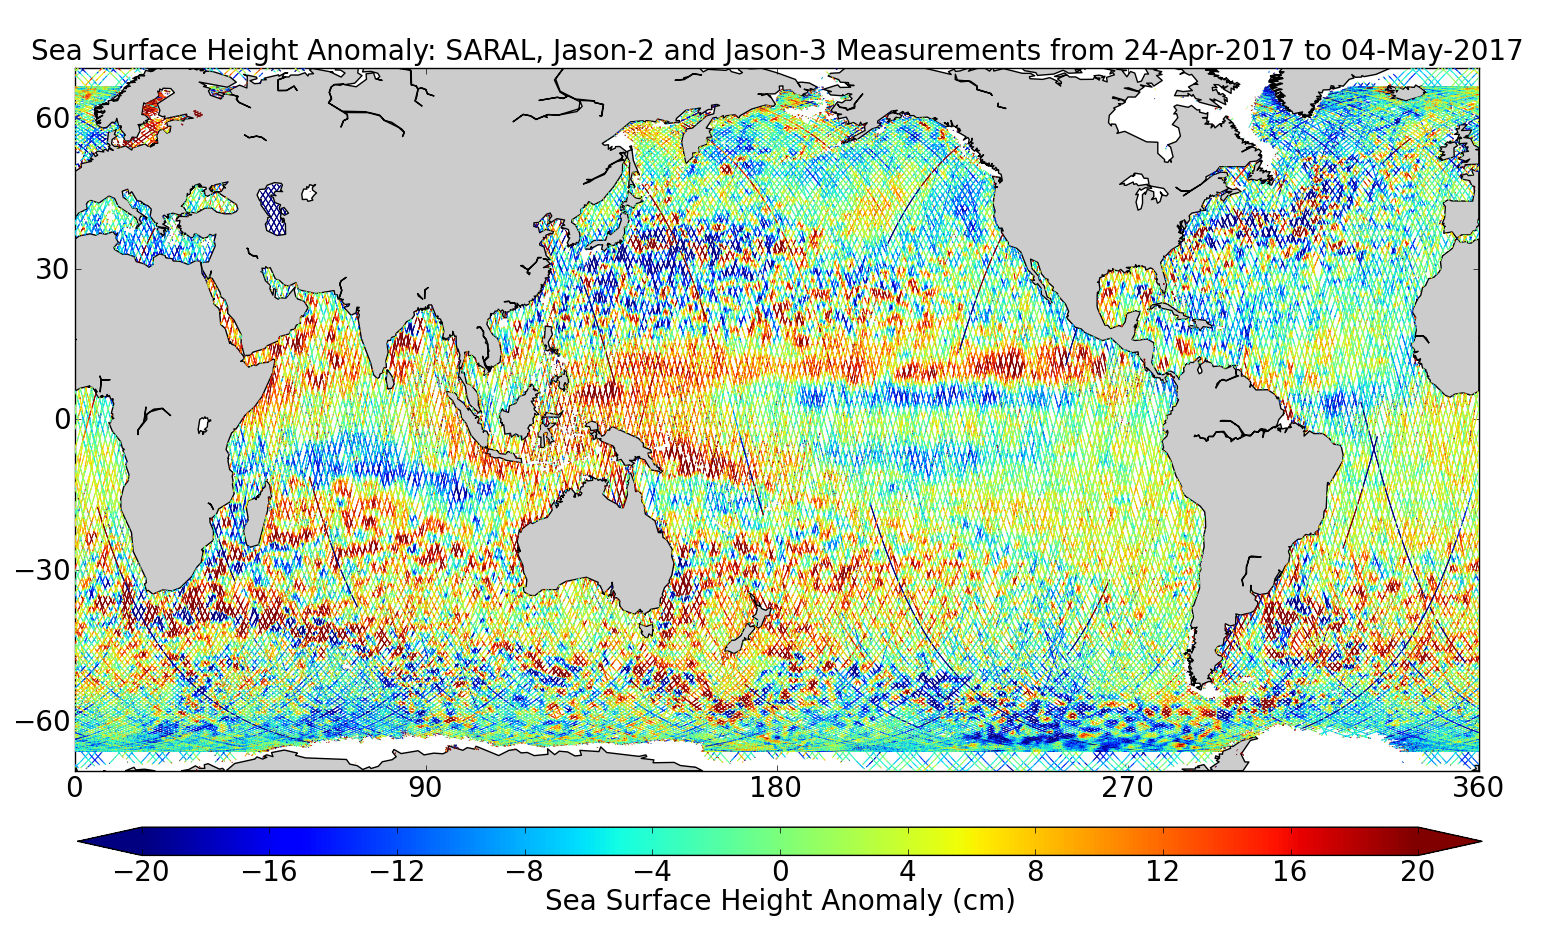 Sea Surface Height Anomaly: SARAL, Jason-2 and Jason-3 Measurements from 24-Apr-2017 to 04-May-2017